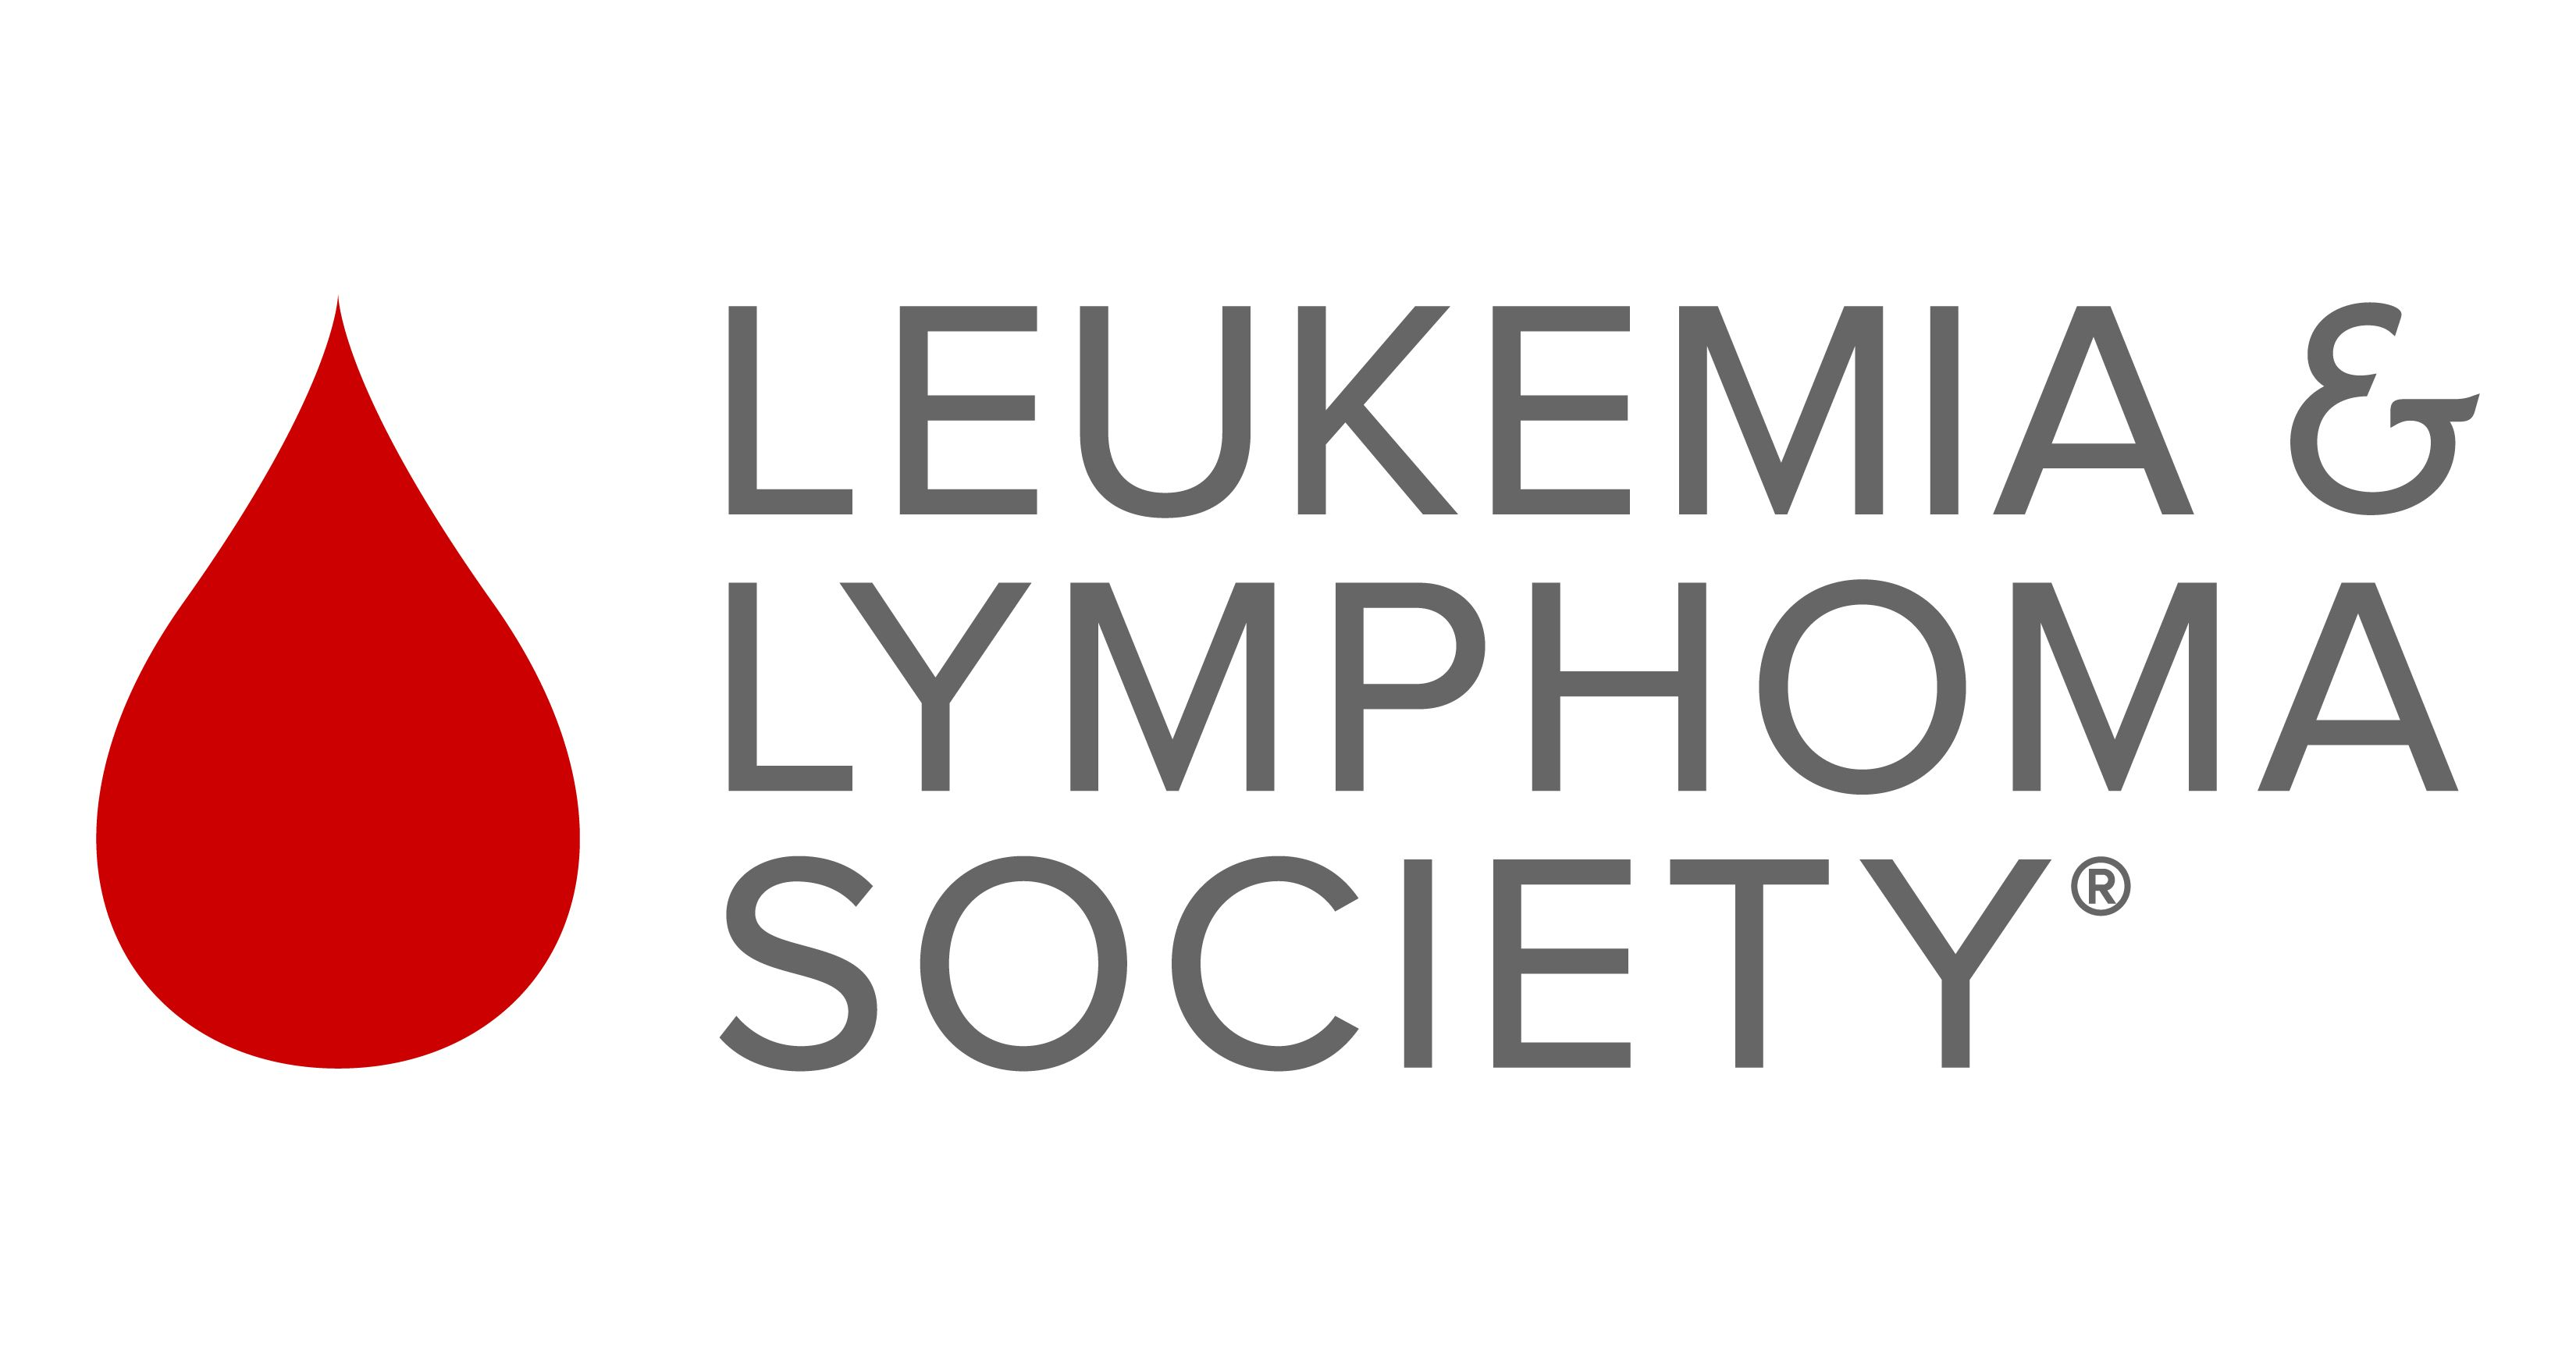 Advocacy Groups | <b>Leukemia & Lymphoma Society</b>